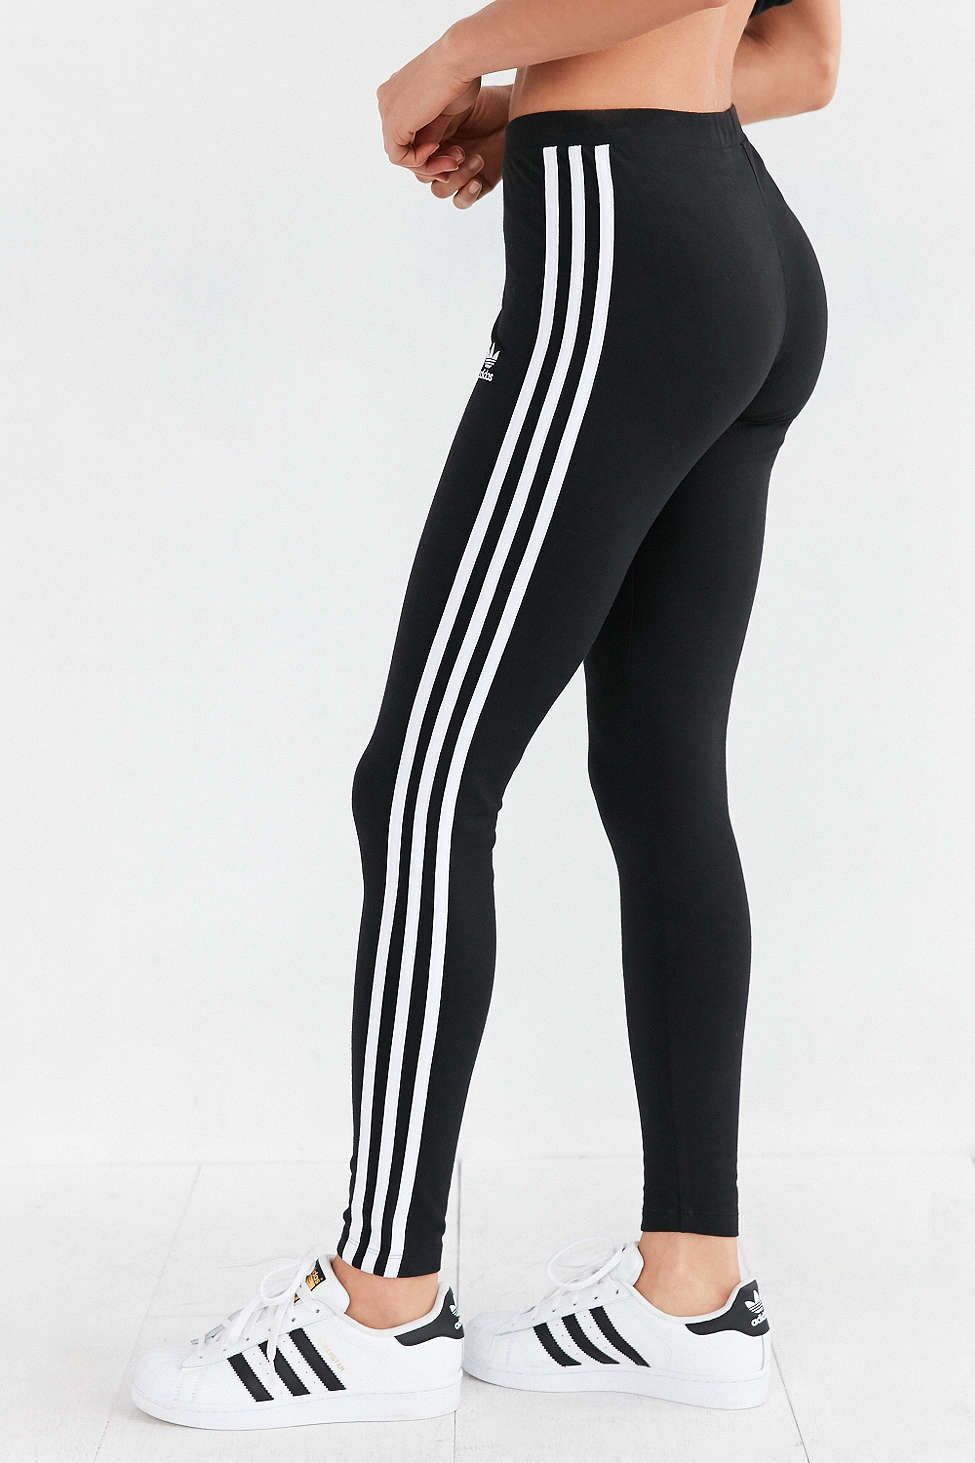 adidas Originals 3 Stripes Legging - Urban Outfitters  bbc7ad6e8fd